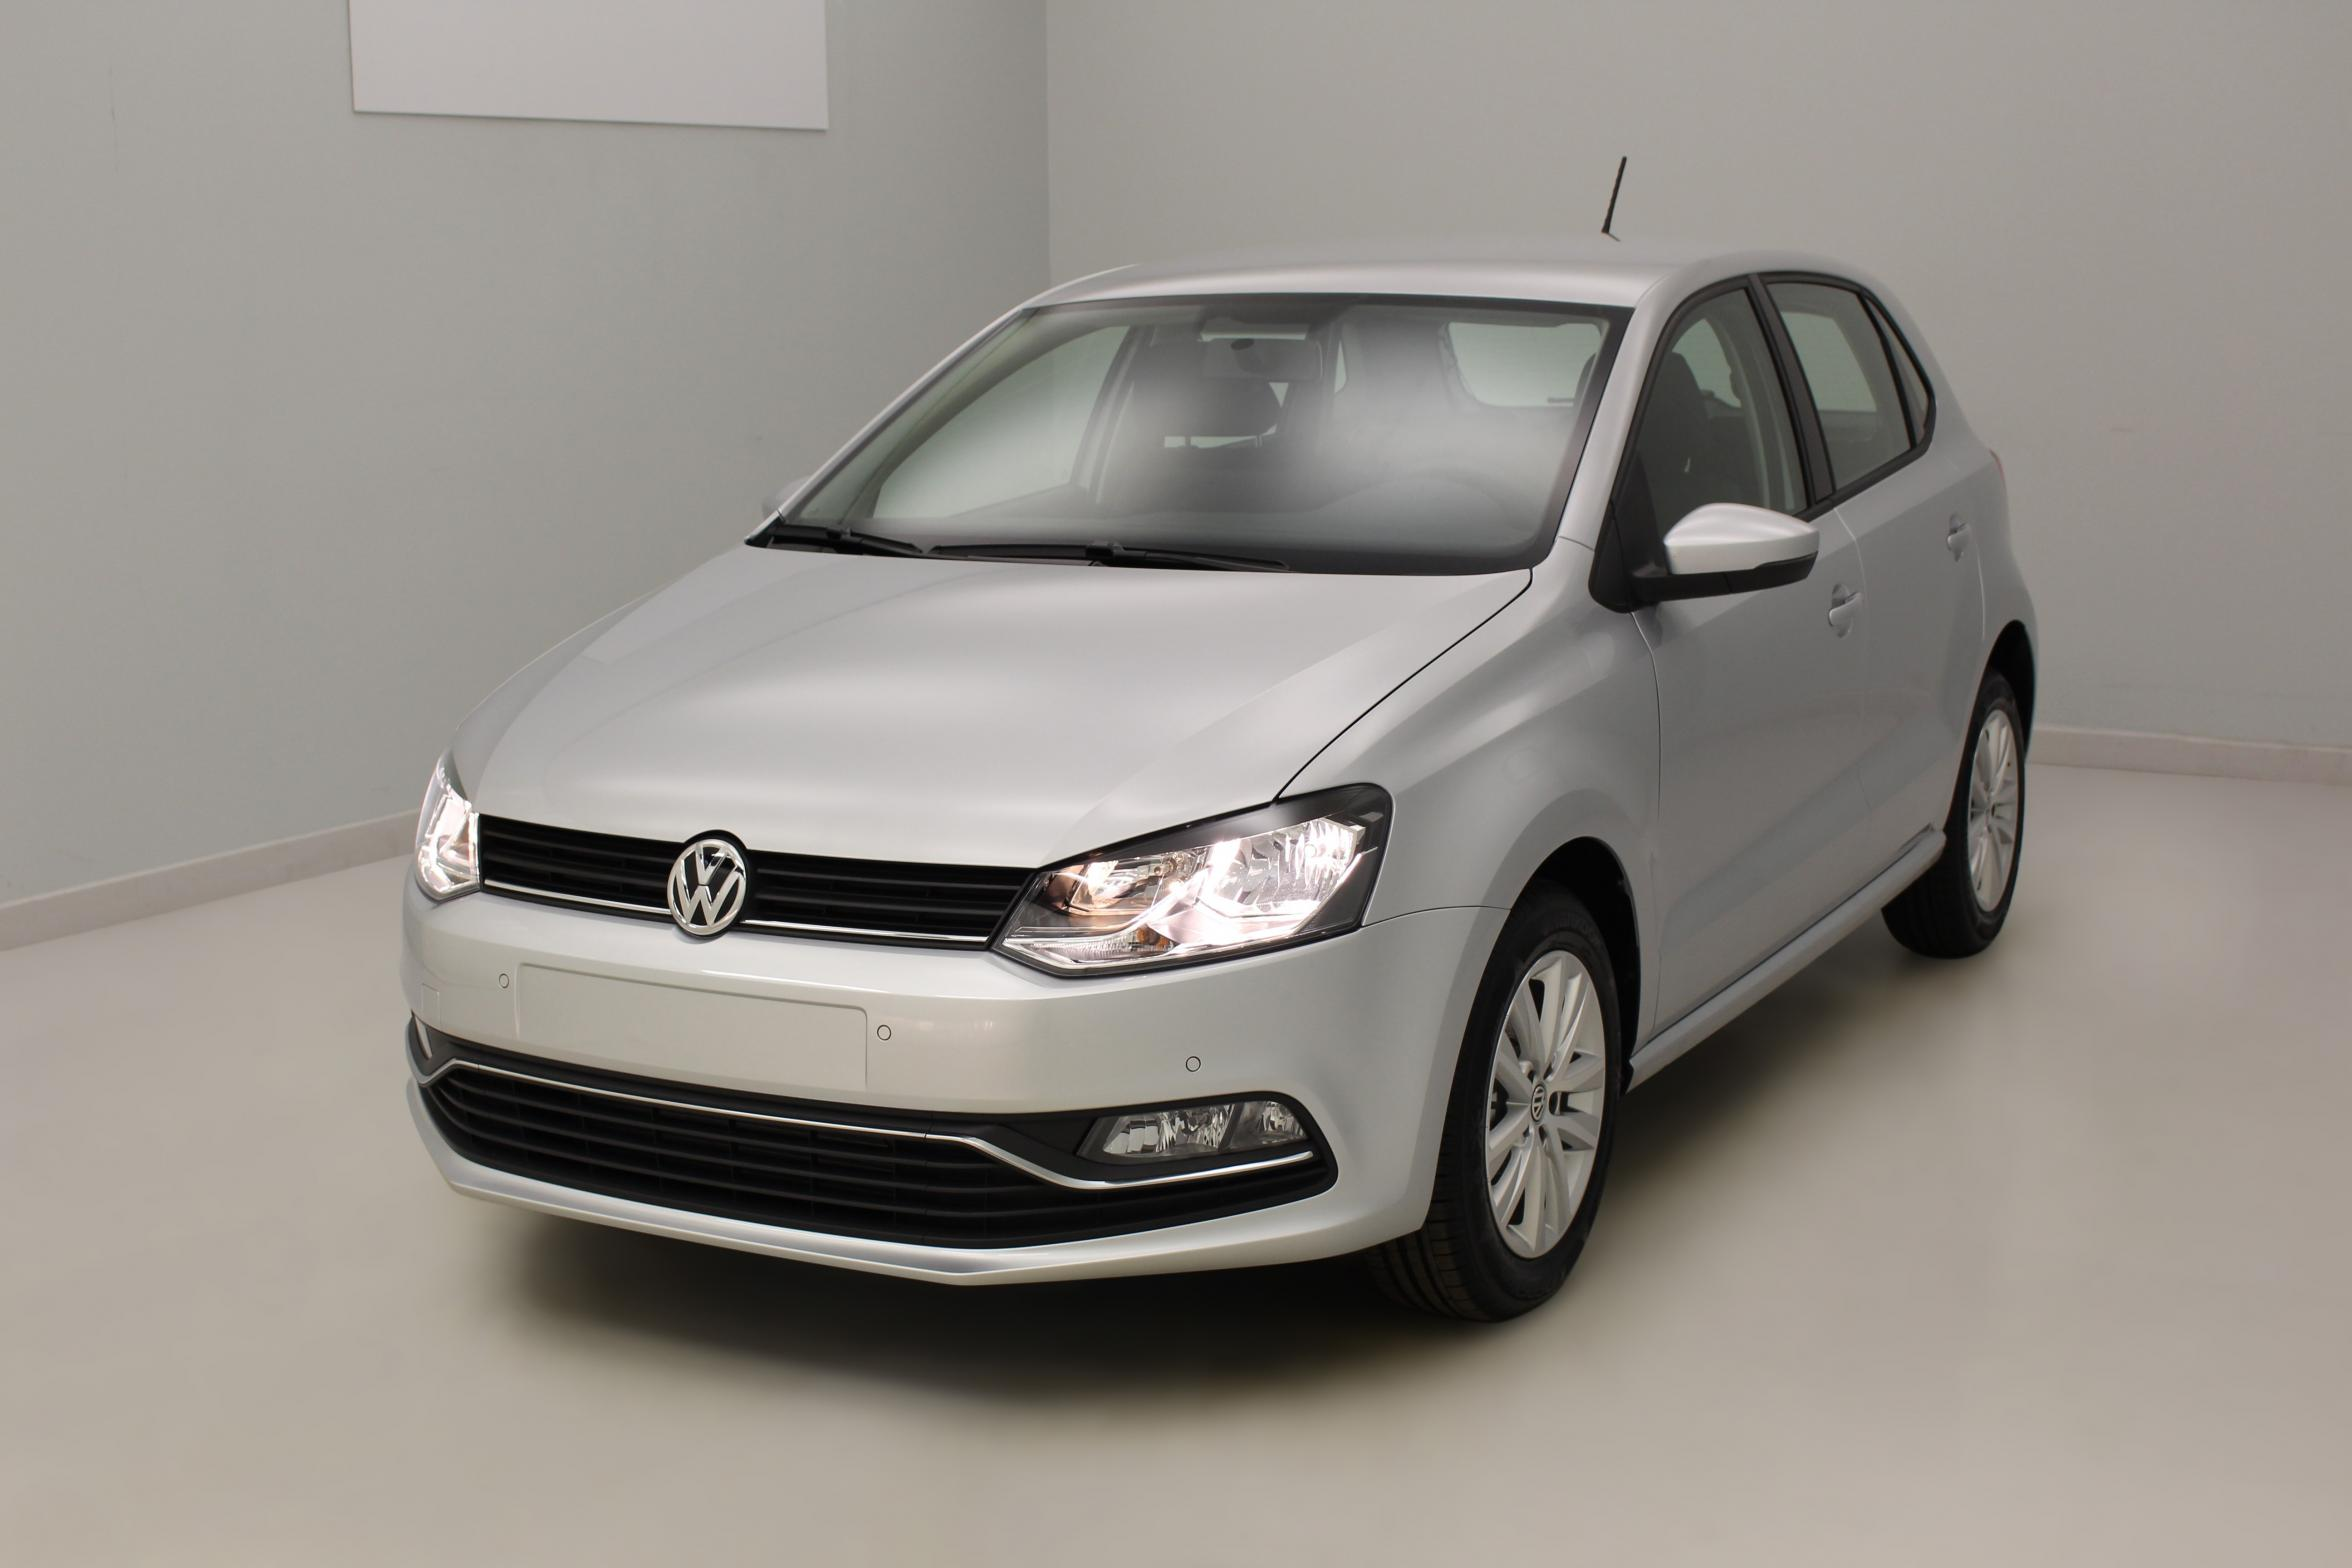 VOLKSWAGEN Nouvelle Polo 1.4 TDI 90 BlueMotion Technology Confortline Reflet d'Argent - Garantie 5 ans ou 100.000 kms avec options